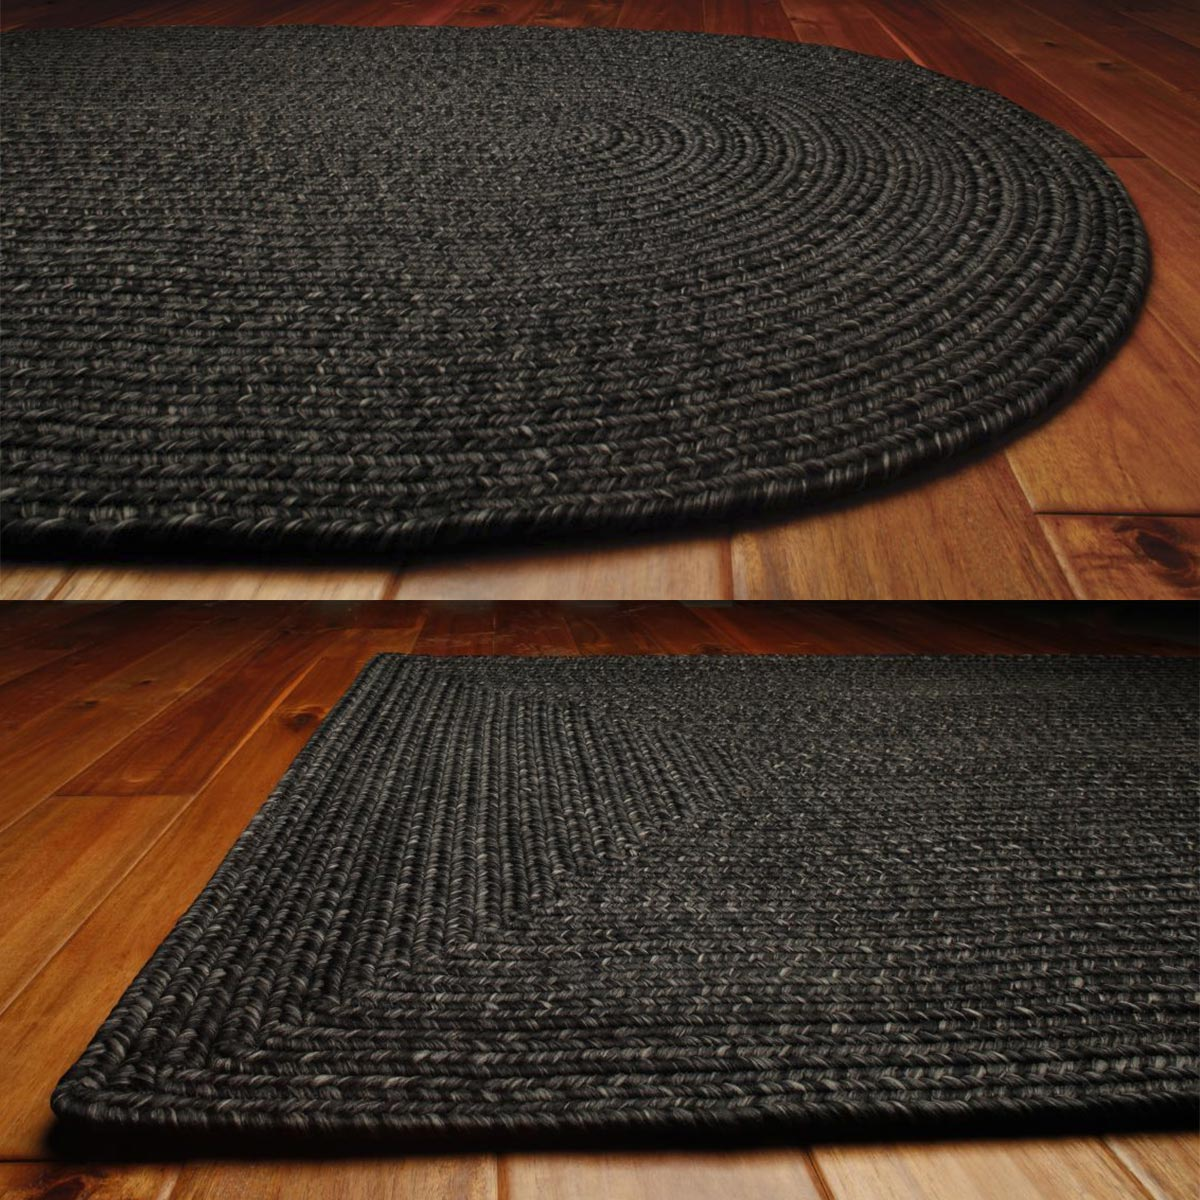 Solid Braided Area Rugs Indoor Outdoor Oval Rectangle - photo#34